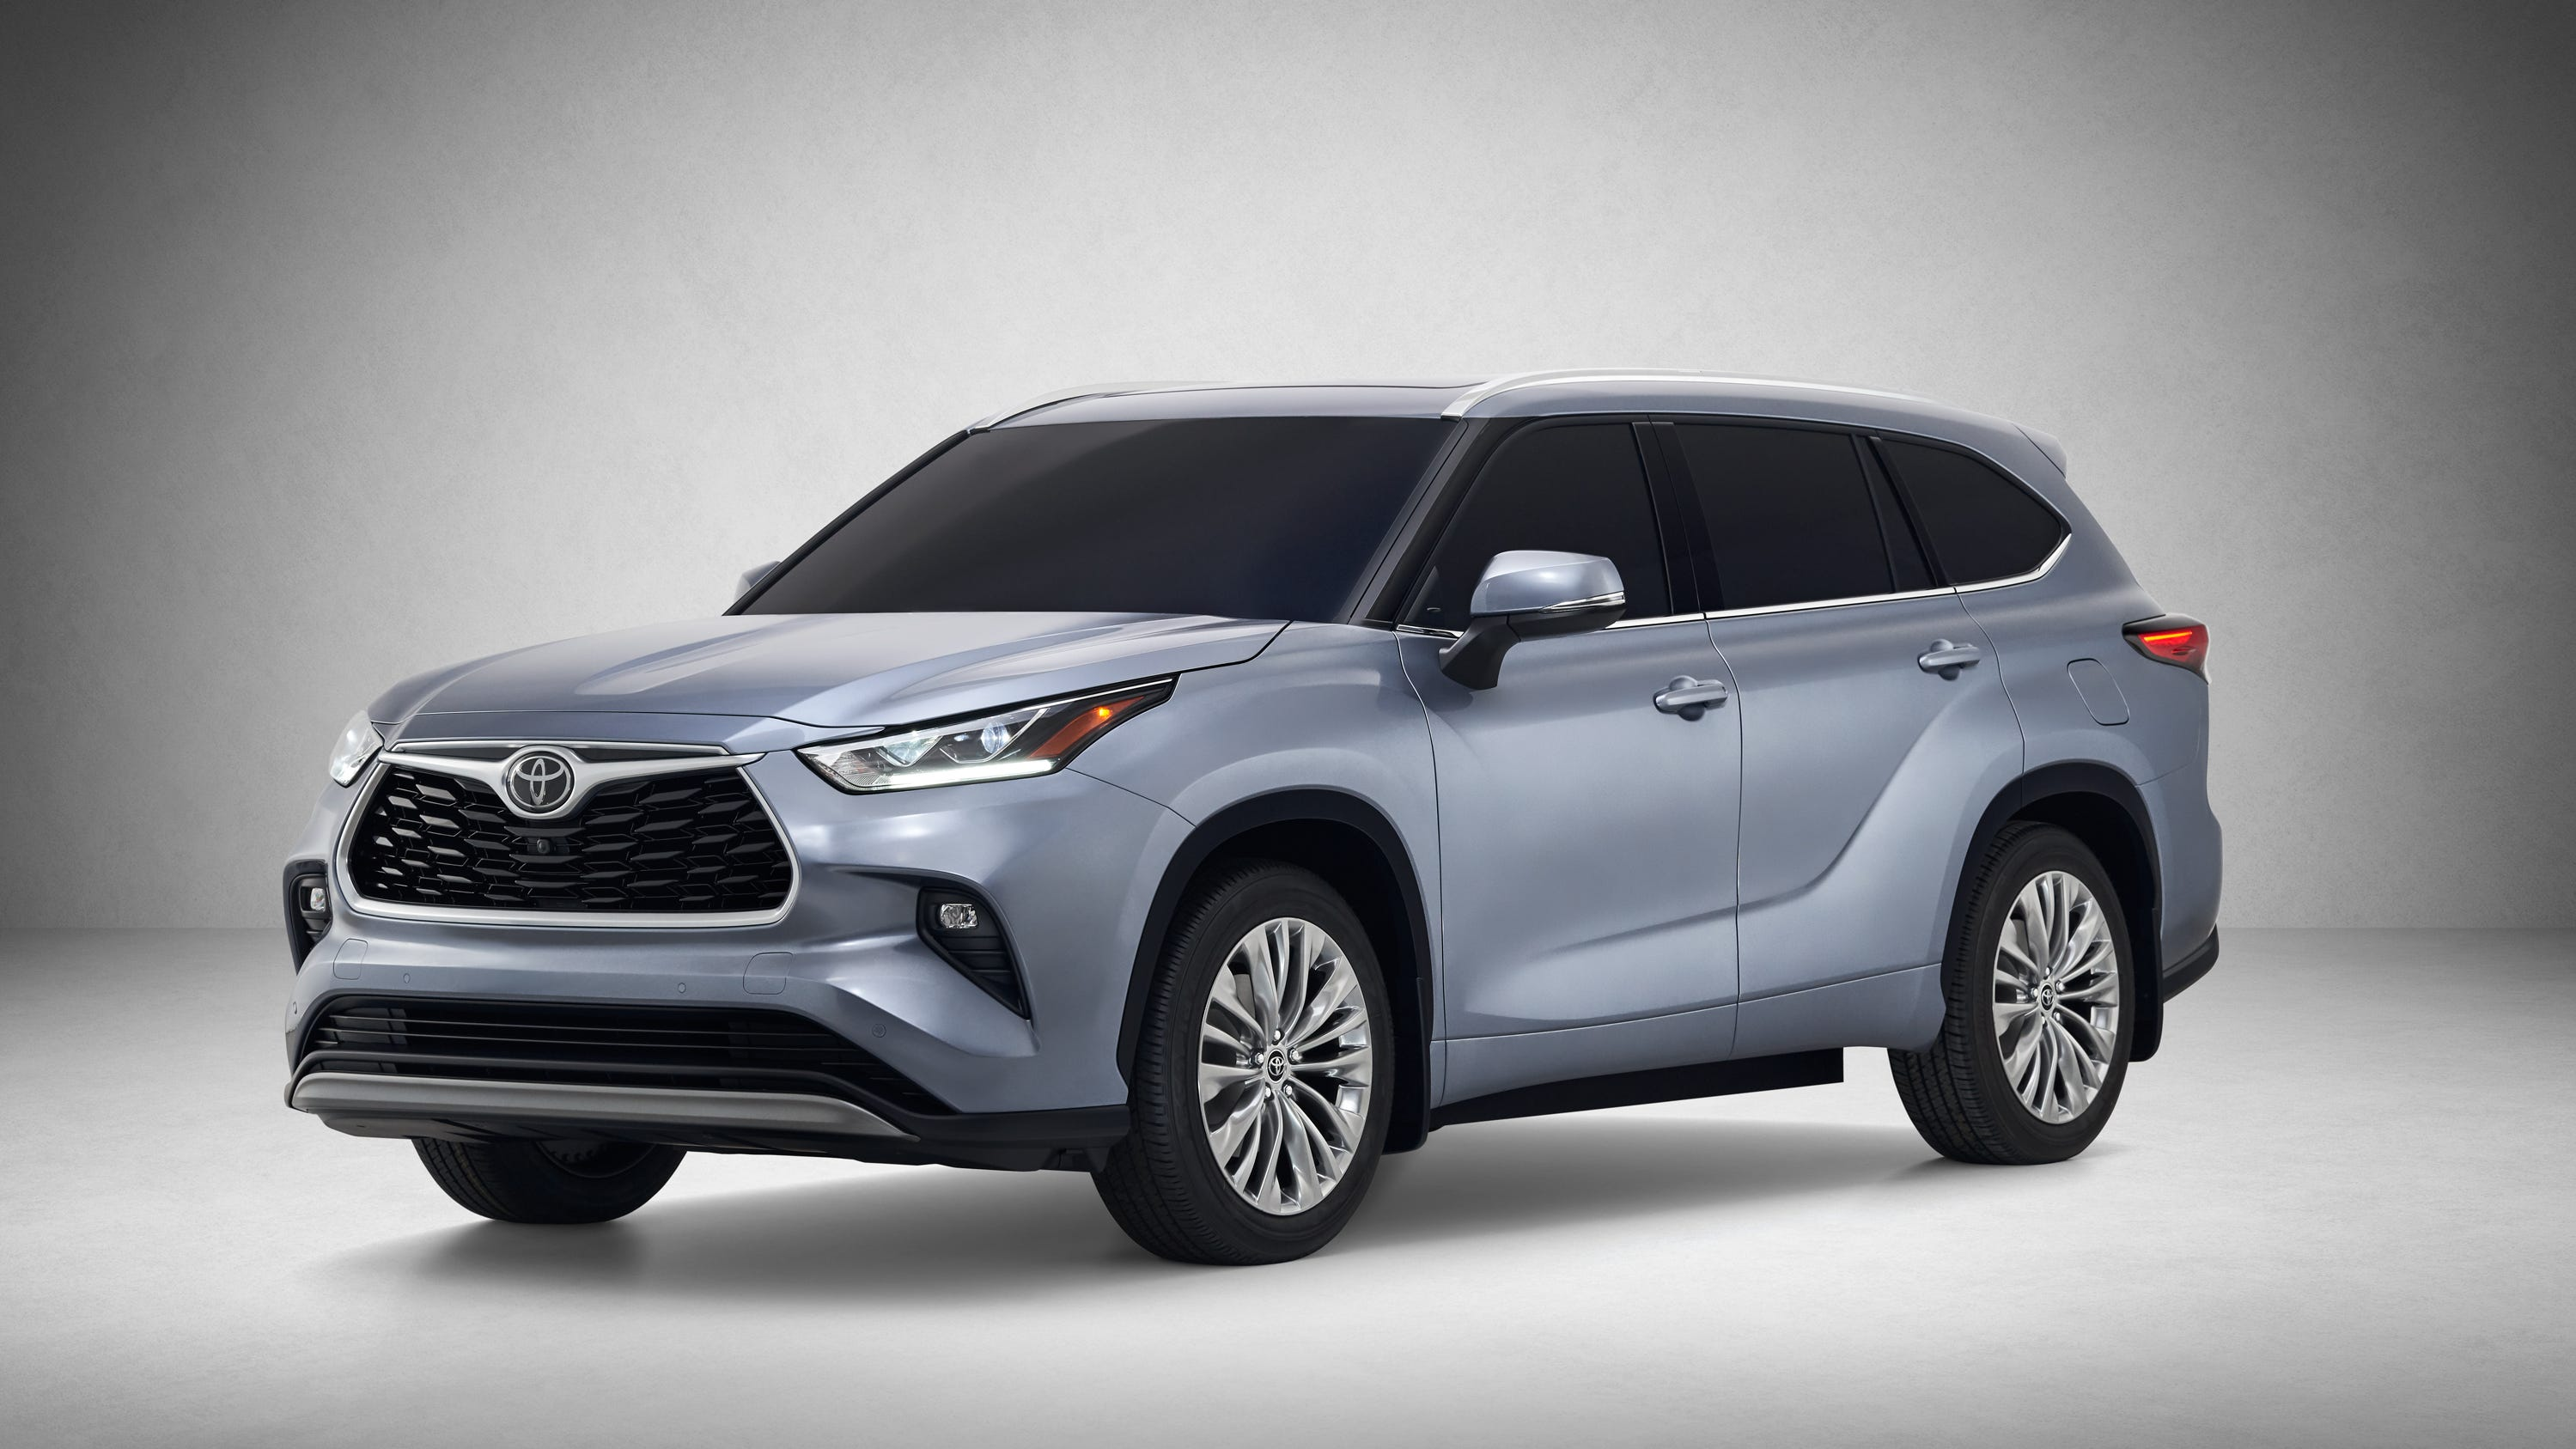 Toyota unveiled a redesigned version ofits Highlander SUV on Wednesday as competition heats up for three-row family vehicles.